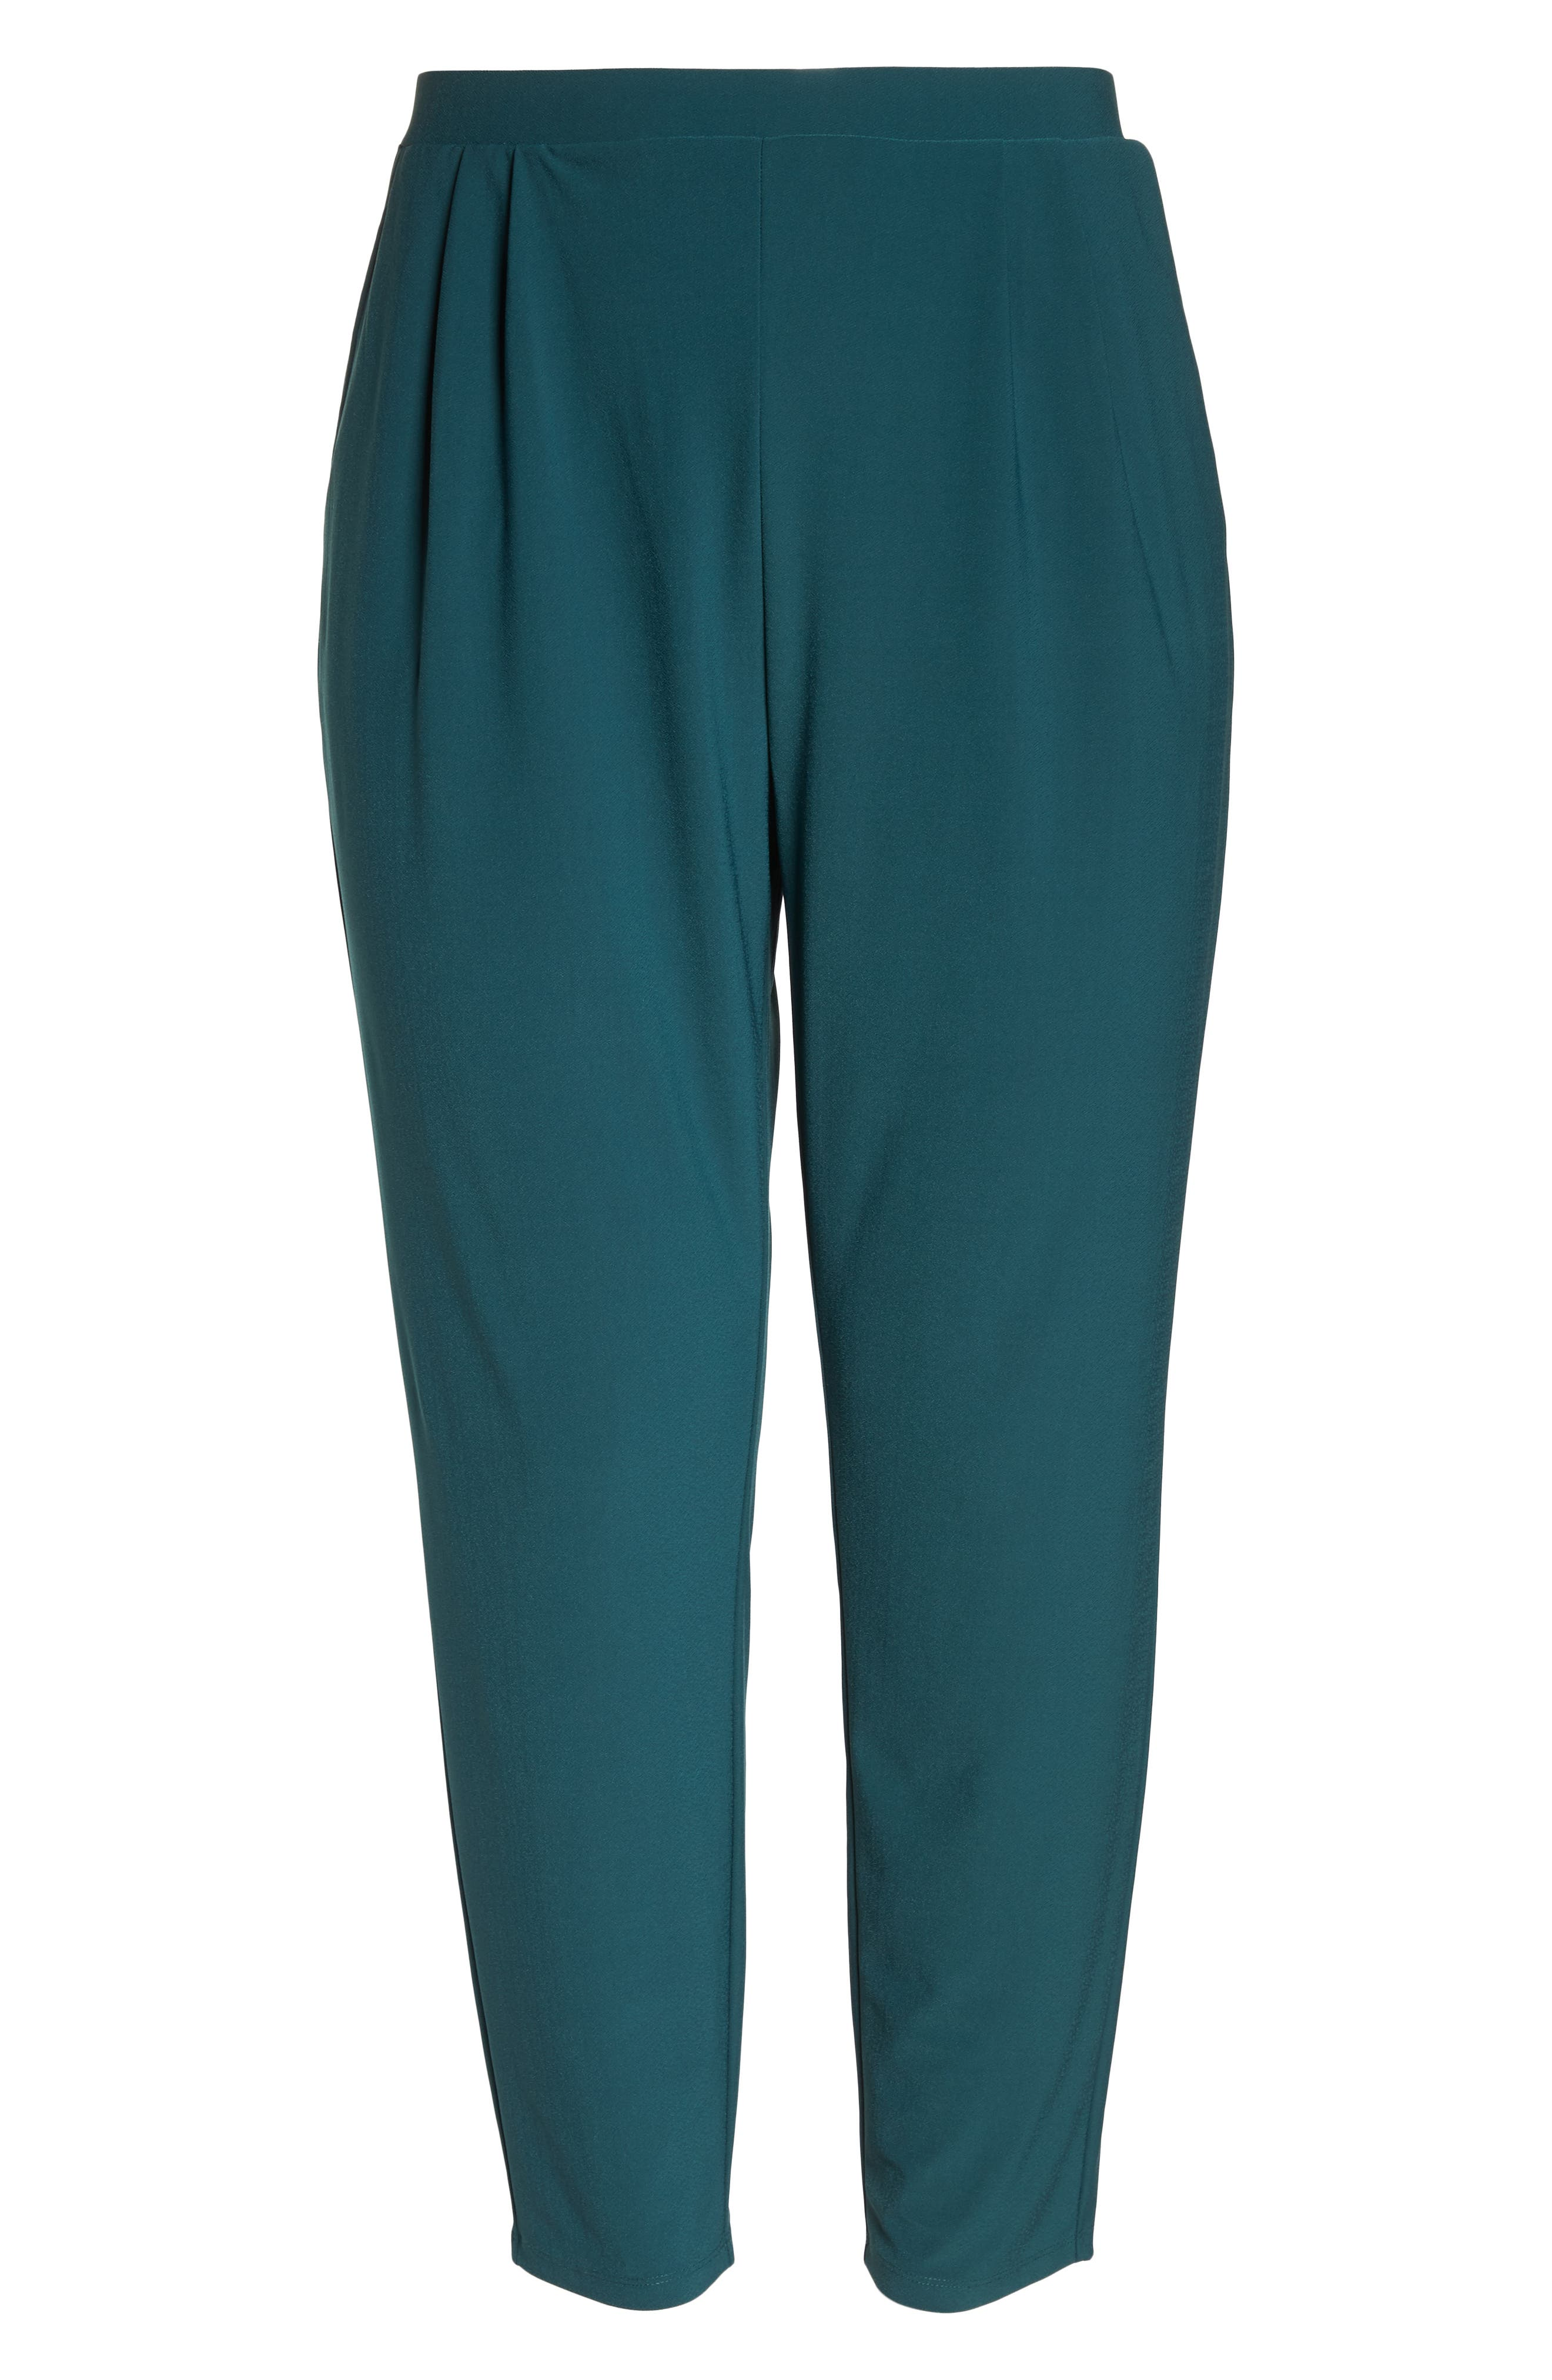 High Rise Pleated Pants,                             Alternate thumbnail 7, color,                             GREEN BUG